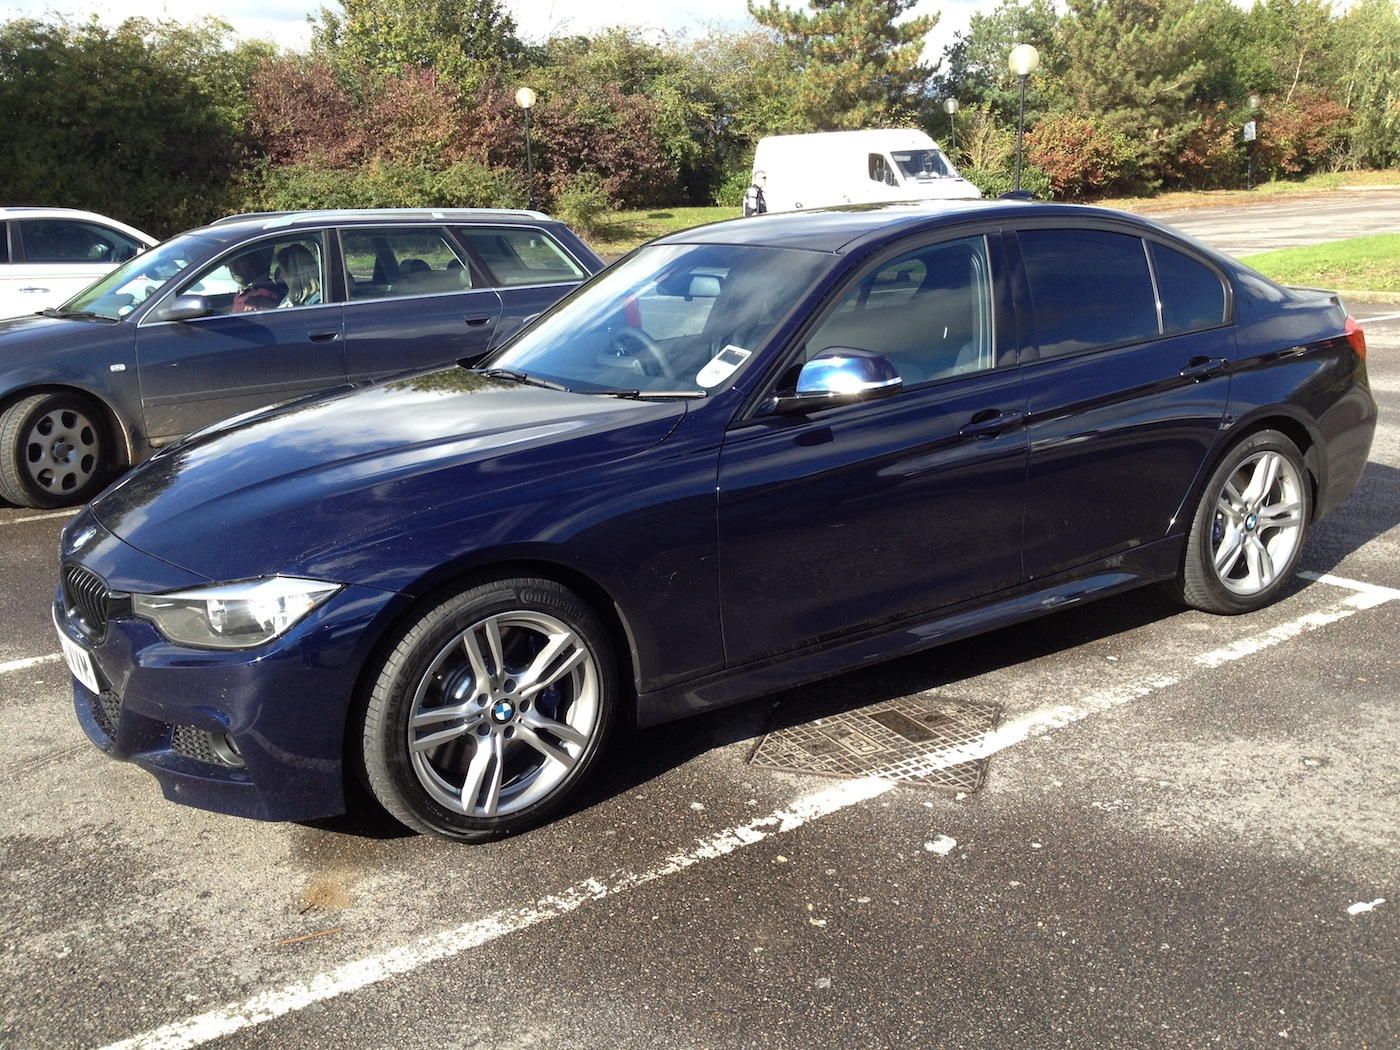 F30 Official Tanzanite Blue F30 Photo Thread Page 3